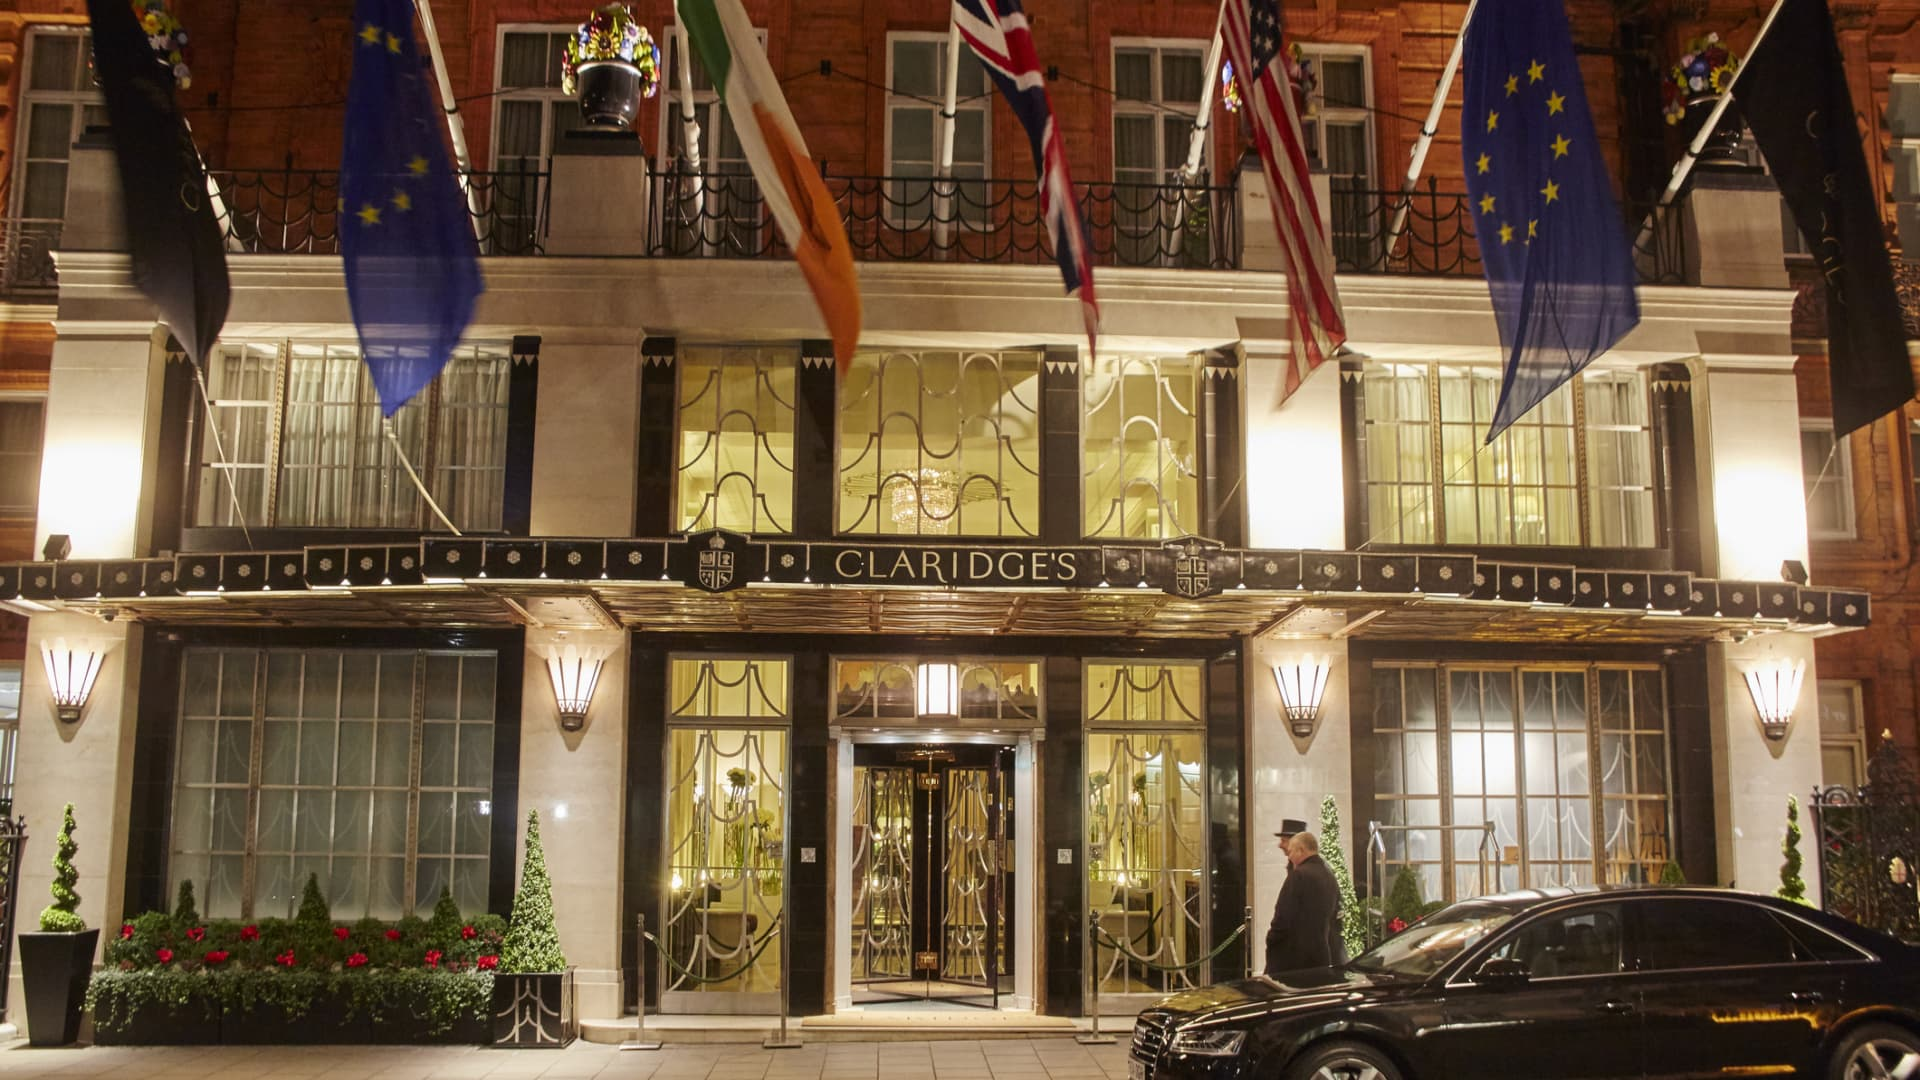 Many people in the U.K. are opting for stays at five-star hotels in London rather than traveling abroad this Christmas.